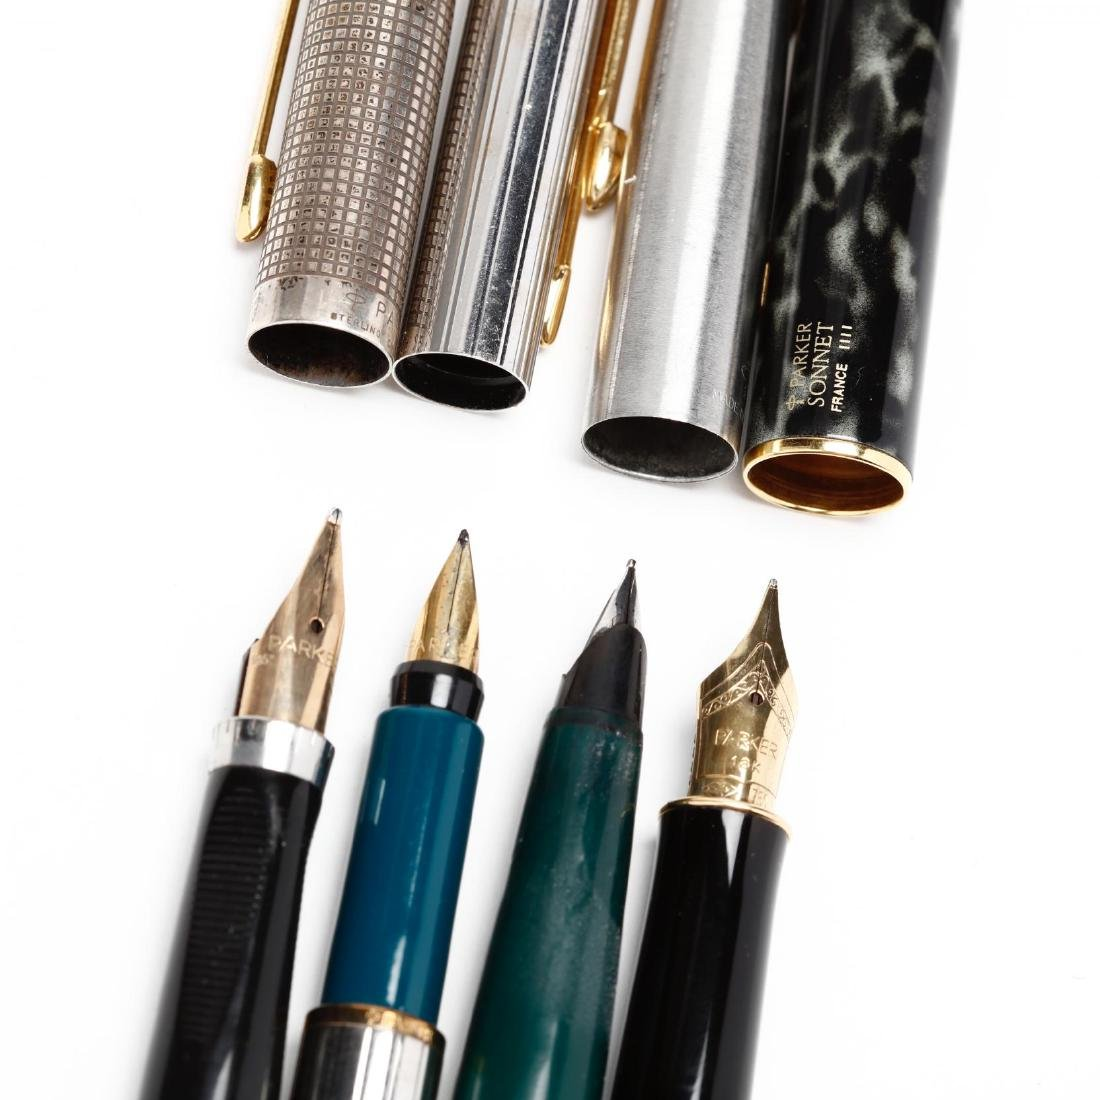 Ten Parker Writing Implements With Accessories - 5